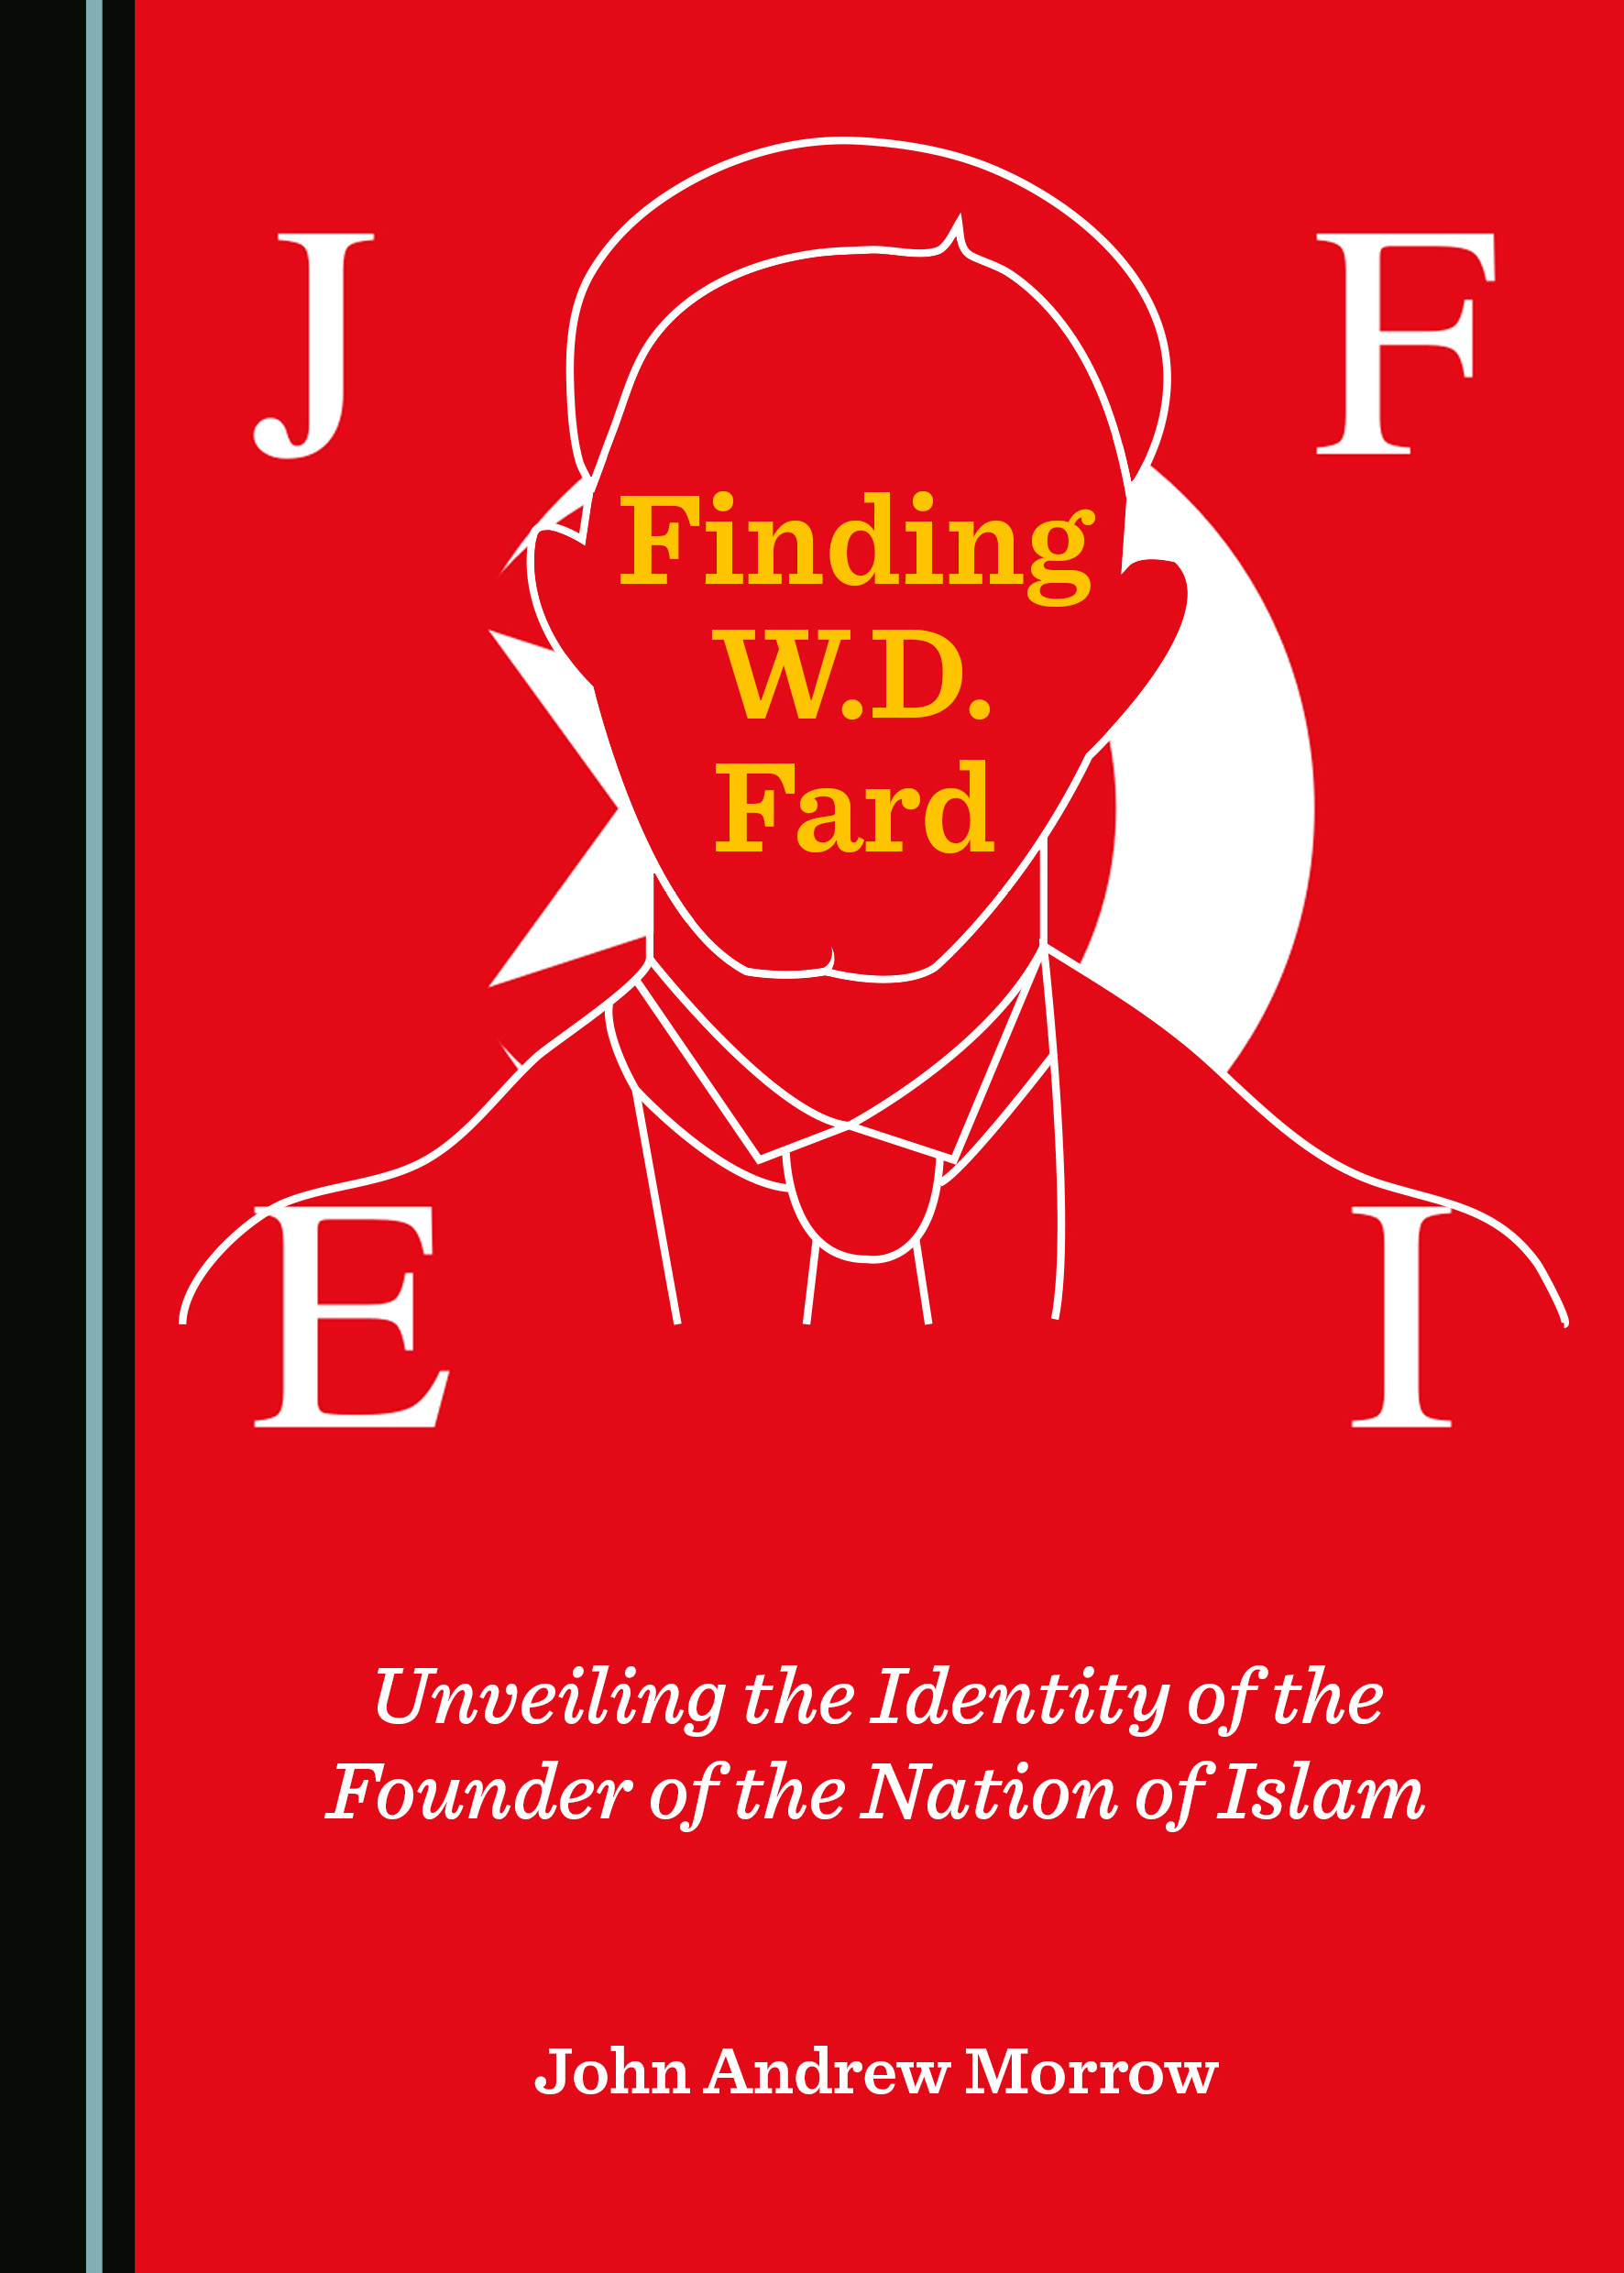 Finding W.D. Fard: Unveiling the Identity of the Founder of the Nation of Islam